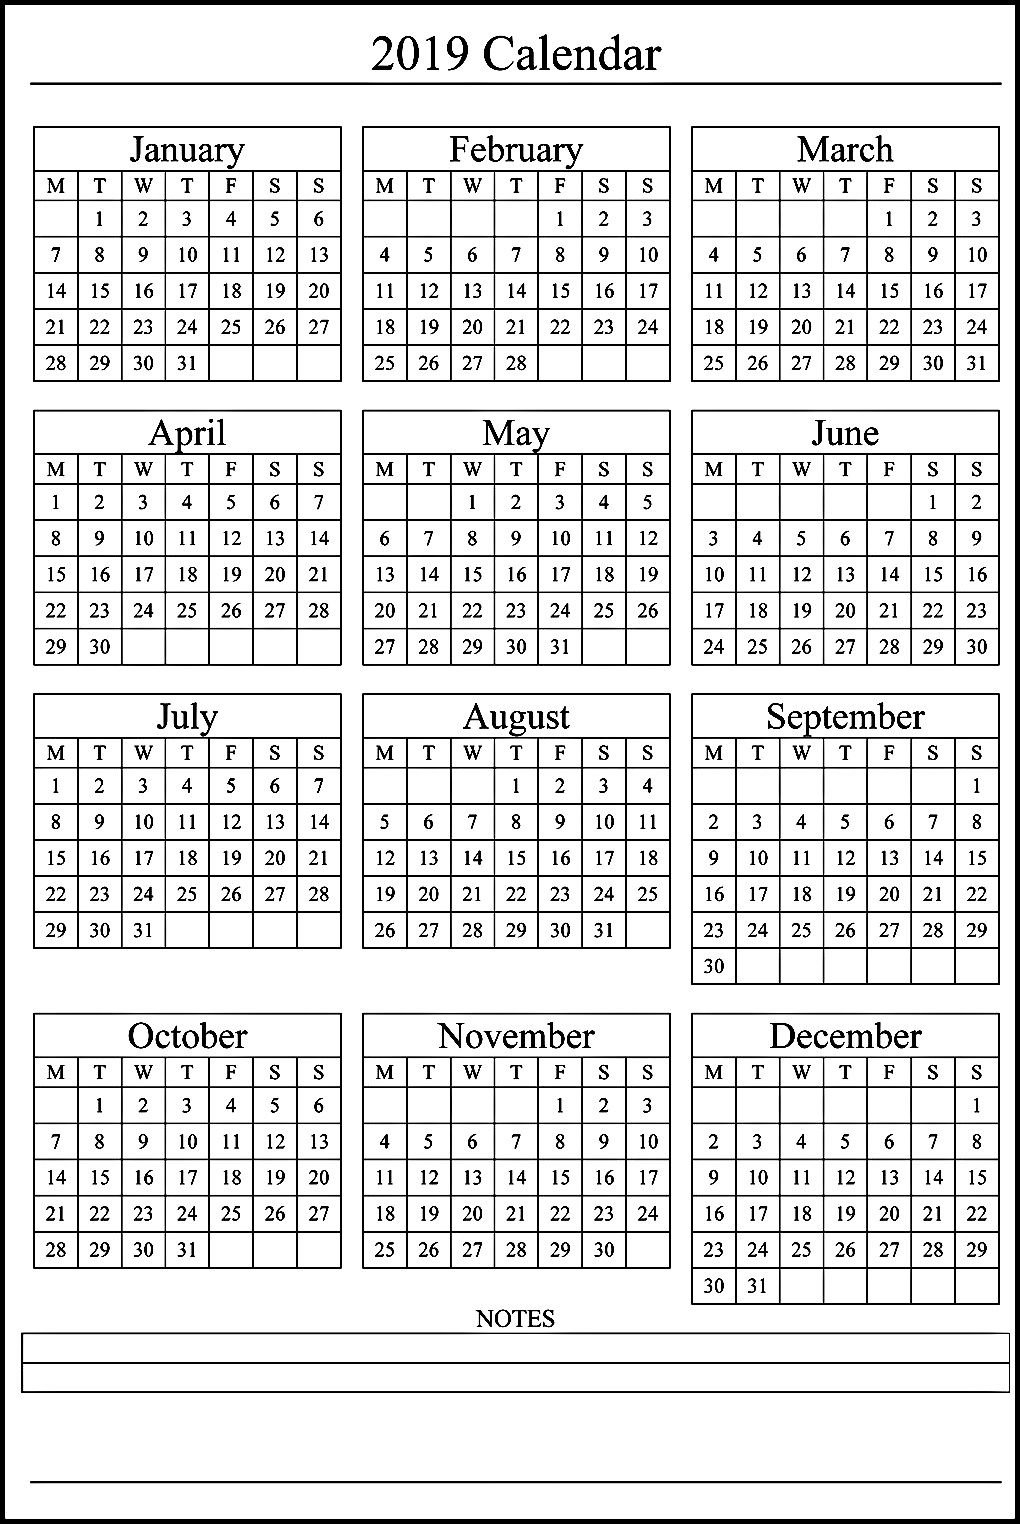 3 Month On One Page Printable - Calendar Inspiration Design Applications To Print 3Month Calendars